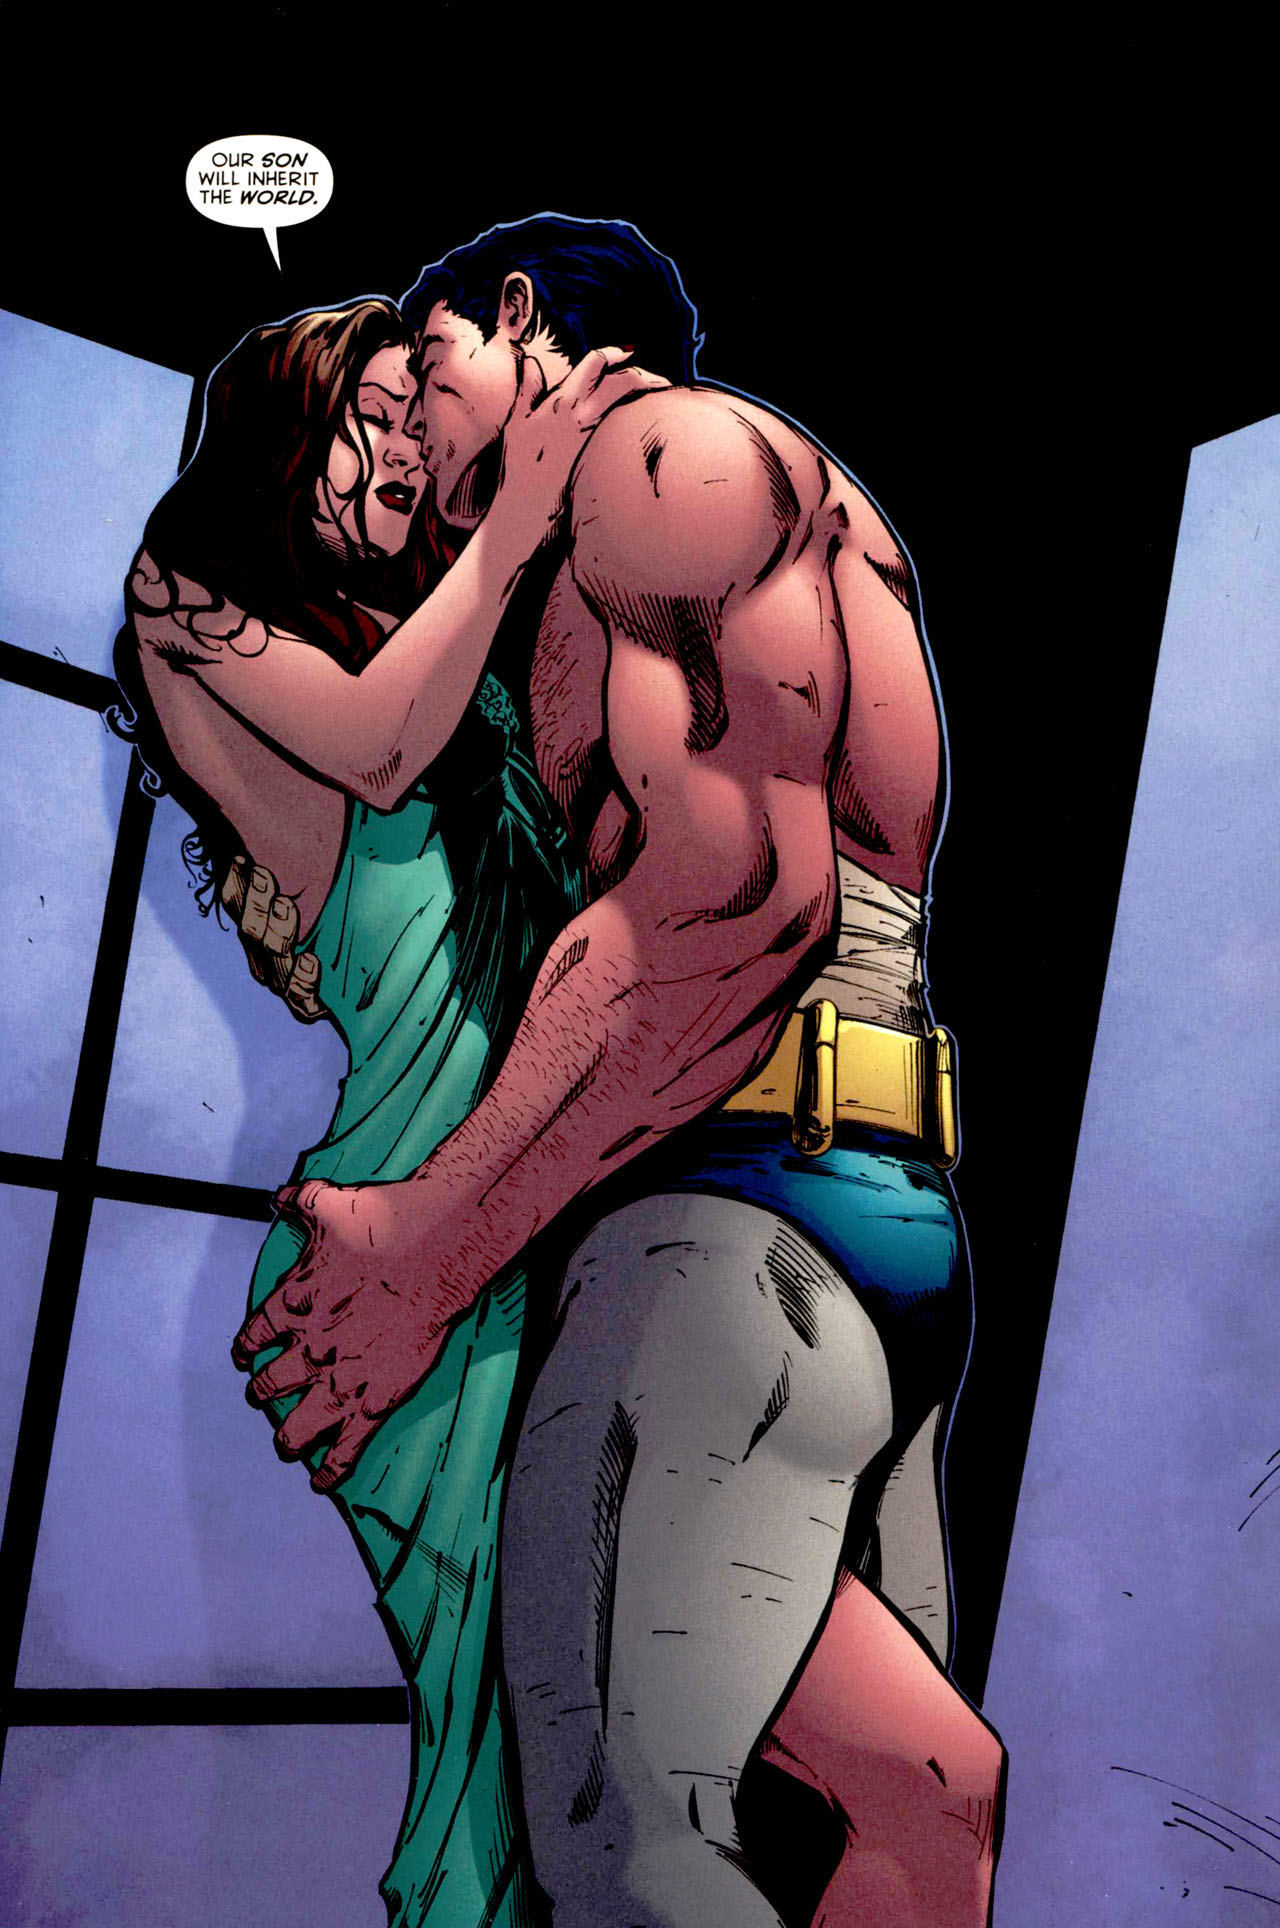 Image - Bruce Wayne 038.jpg - DC Comics Database